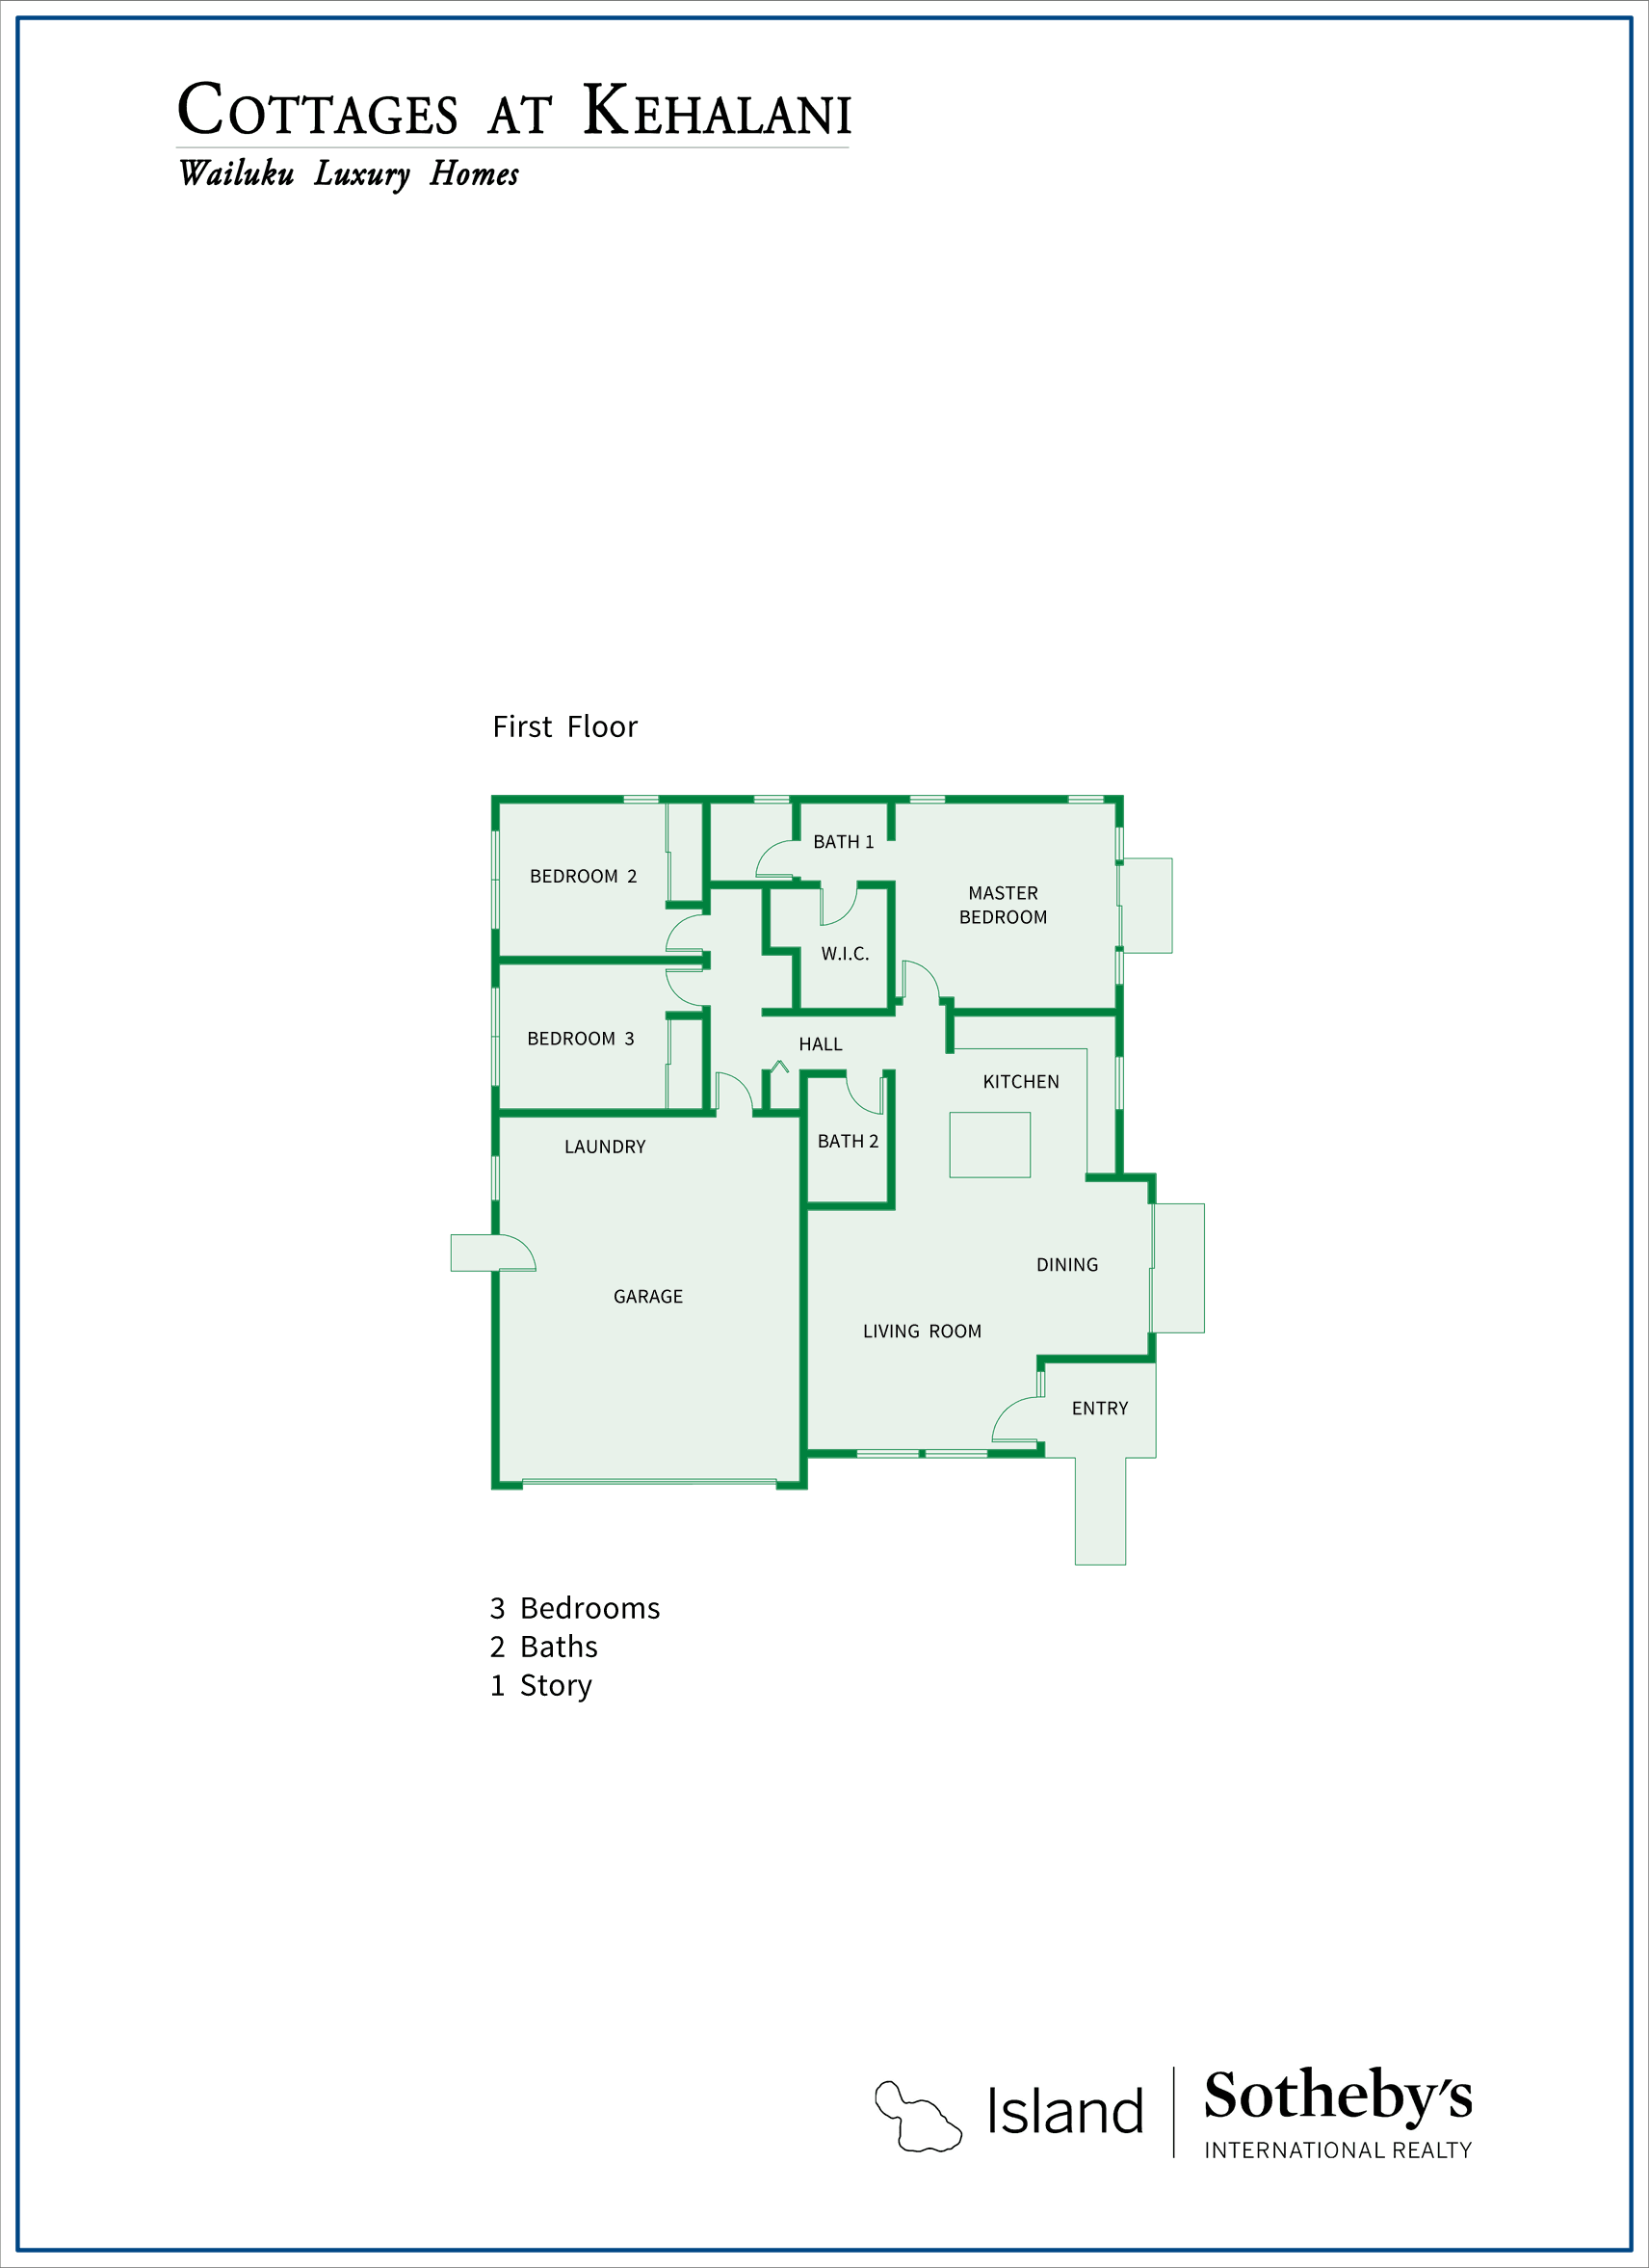 Cottages at Kehalani Floor Plan